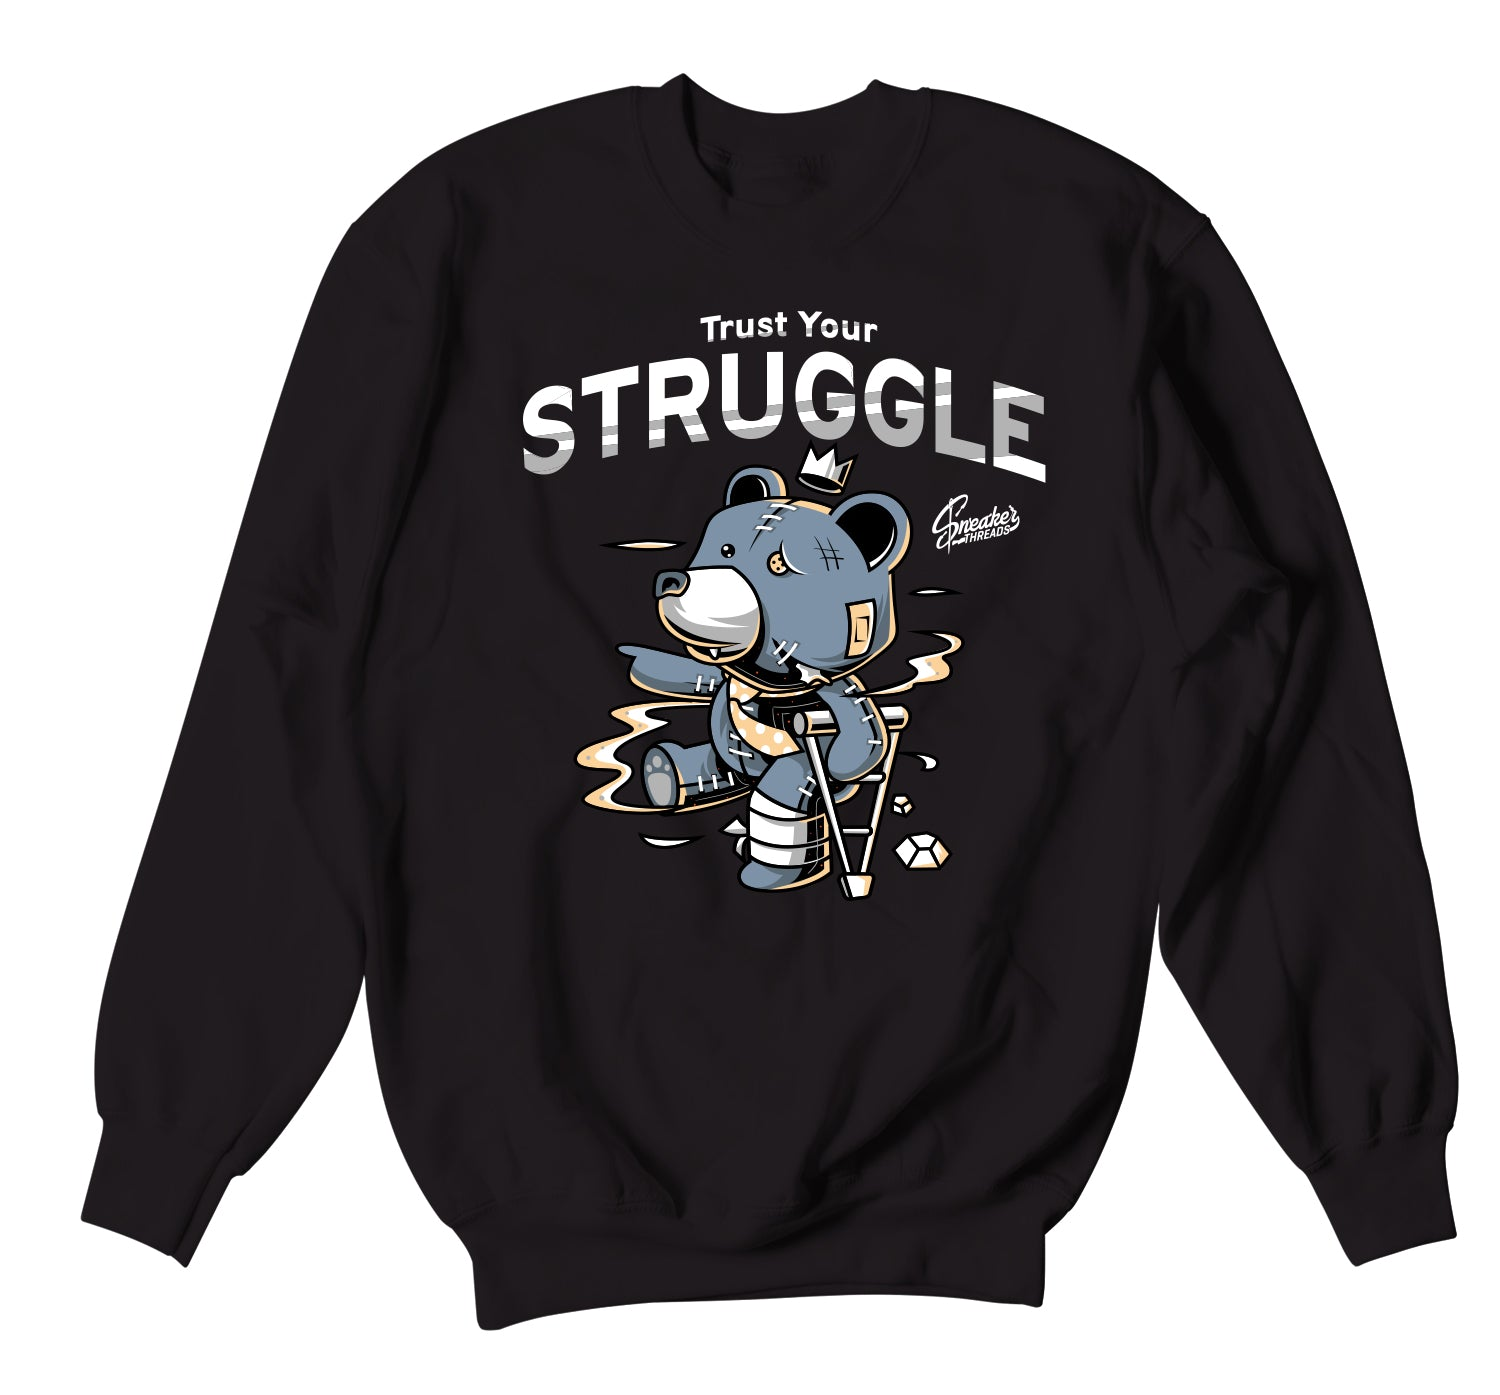 Yeezy Ash Blue 350 Sweater - Trust Your Struggle - Black